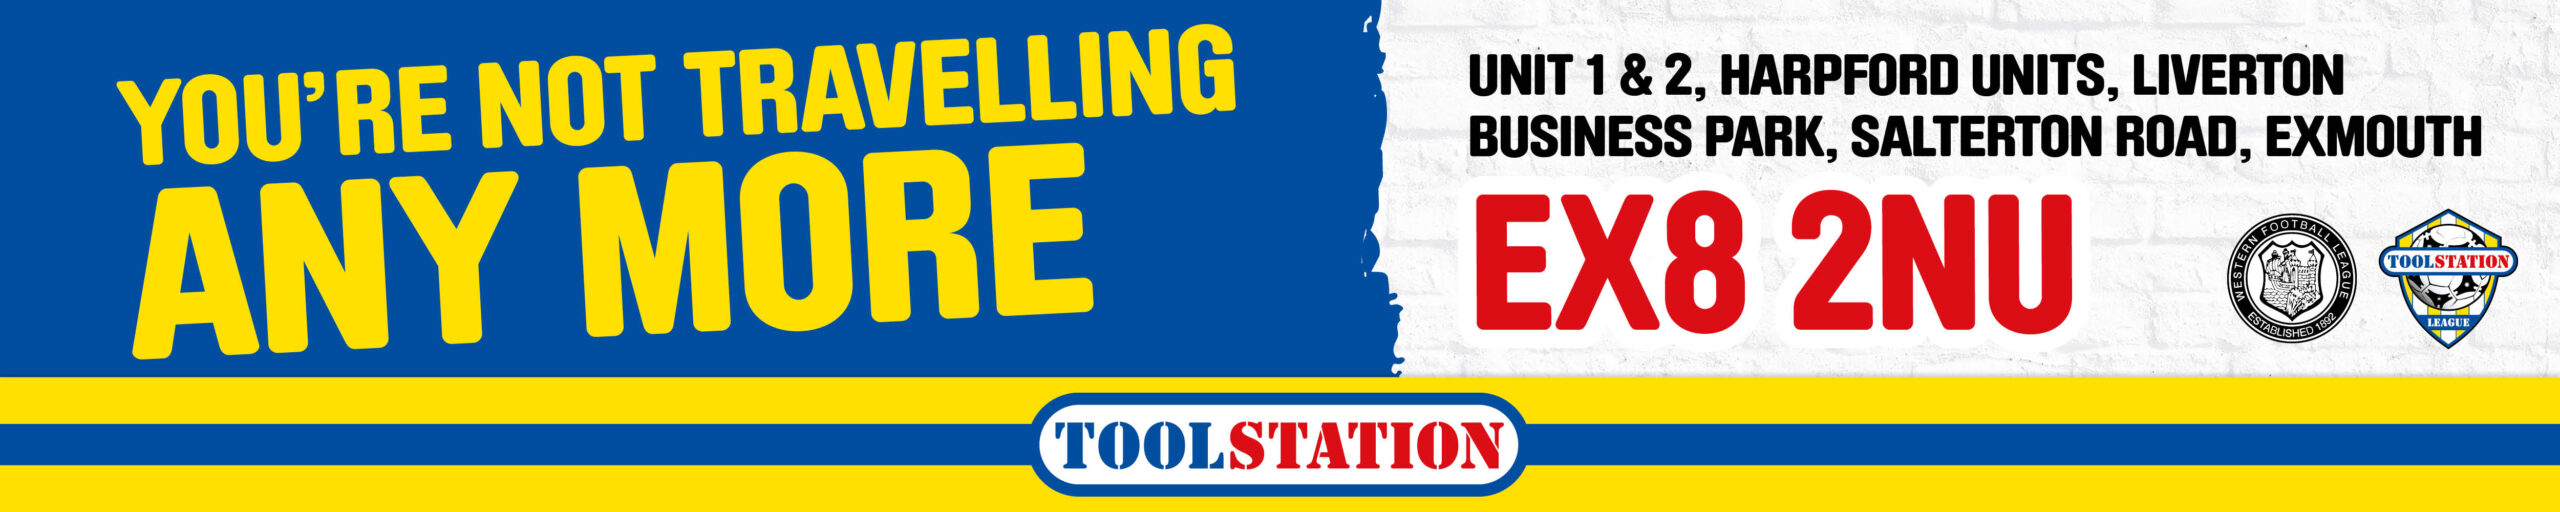 Exmouth Toolstation